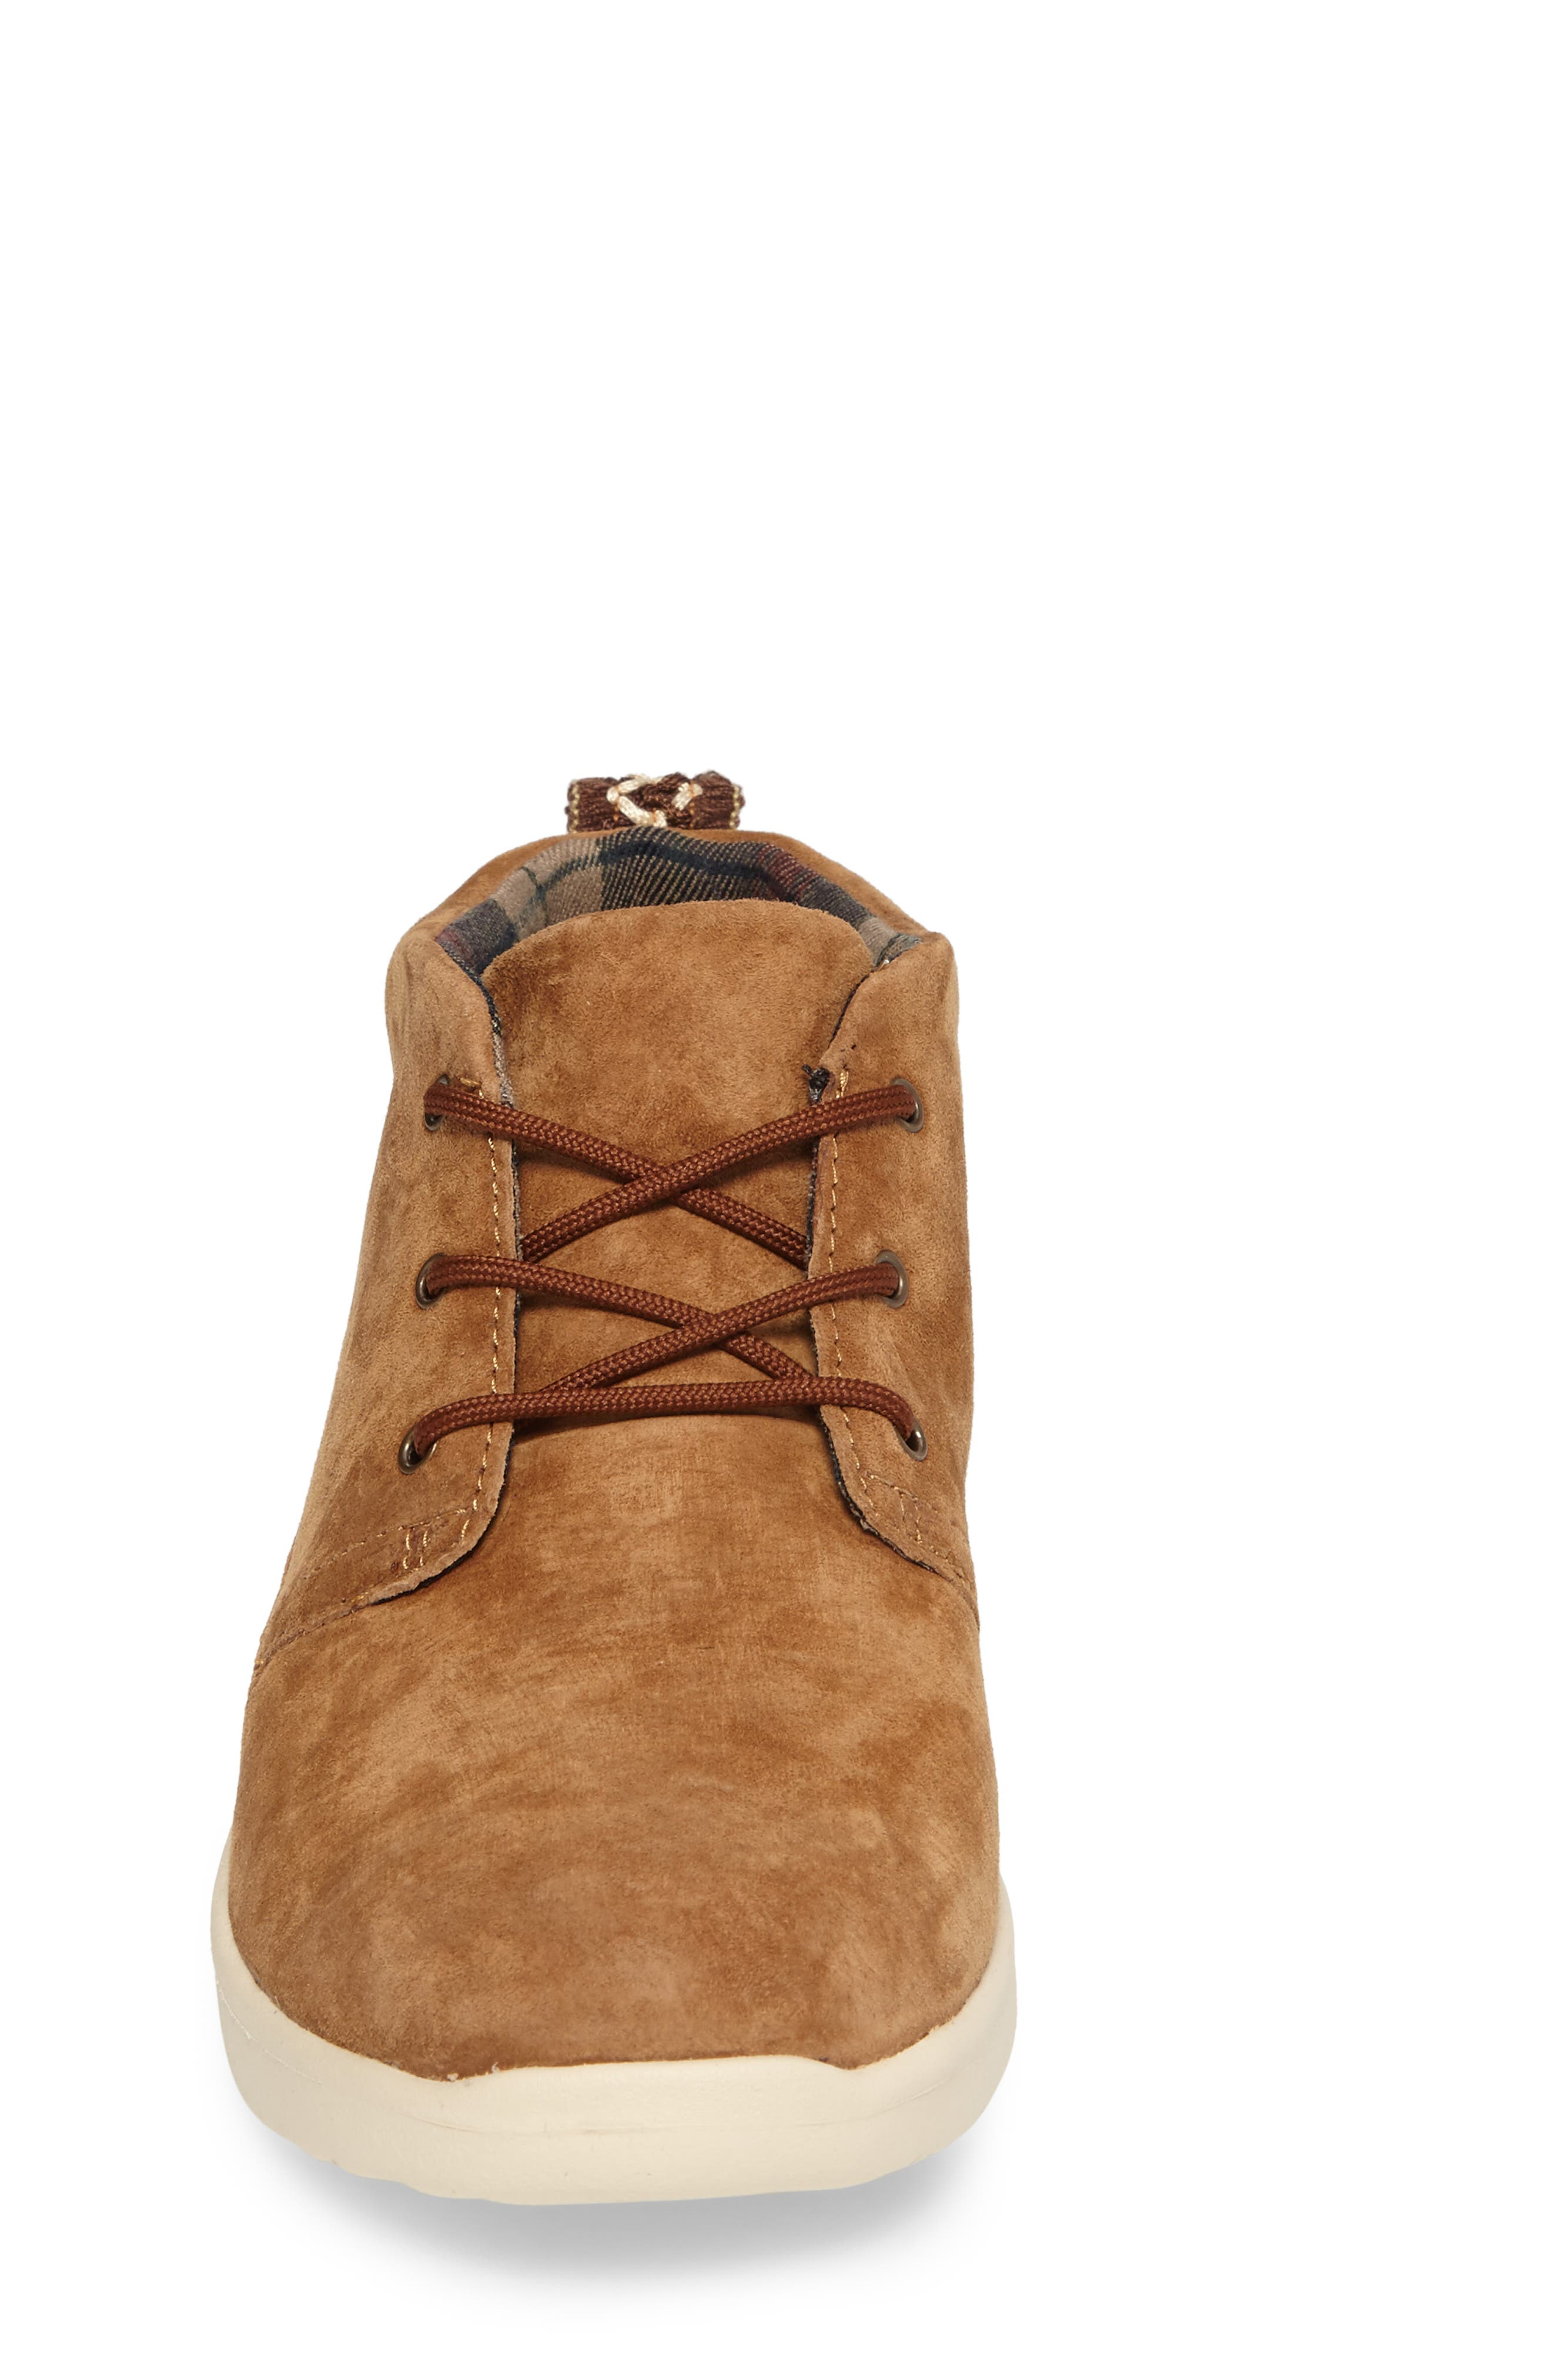 Alternate Image 4  - UGG® Canoe Chukka Boot (Walker, Toddler, Little Kid & Big Kid)